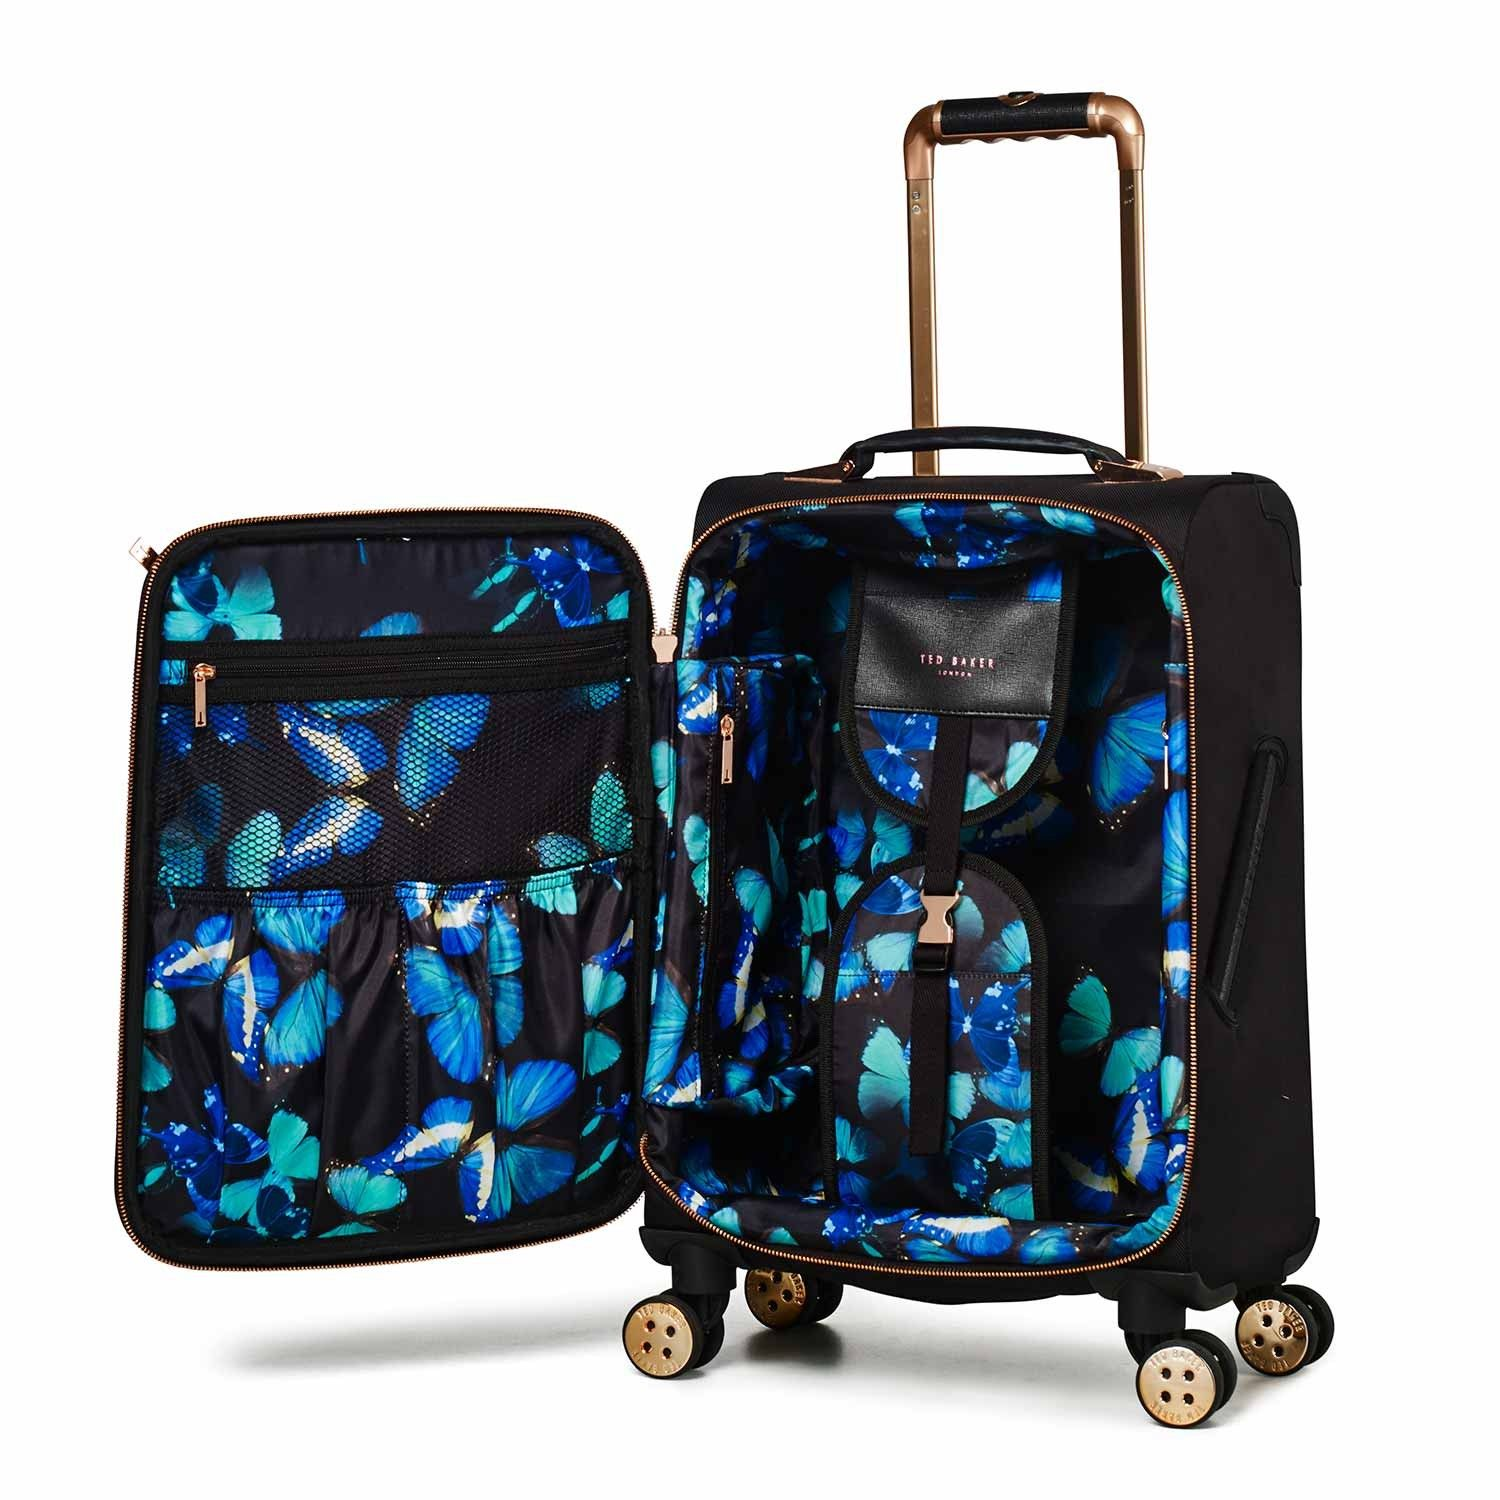 03d50e0c0f10 Luggage Ted Baker Albany Collection TBW5003 4 Wheel Cabin Case Black Rose  Gold